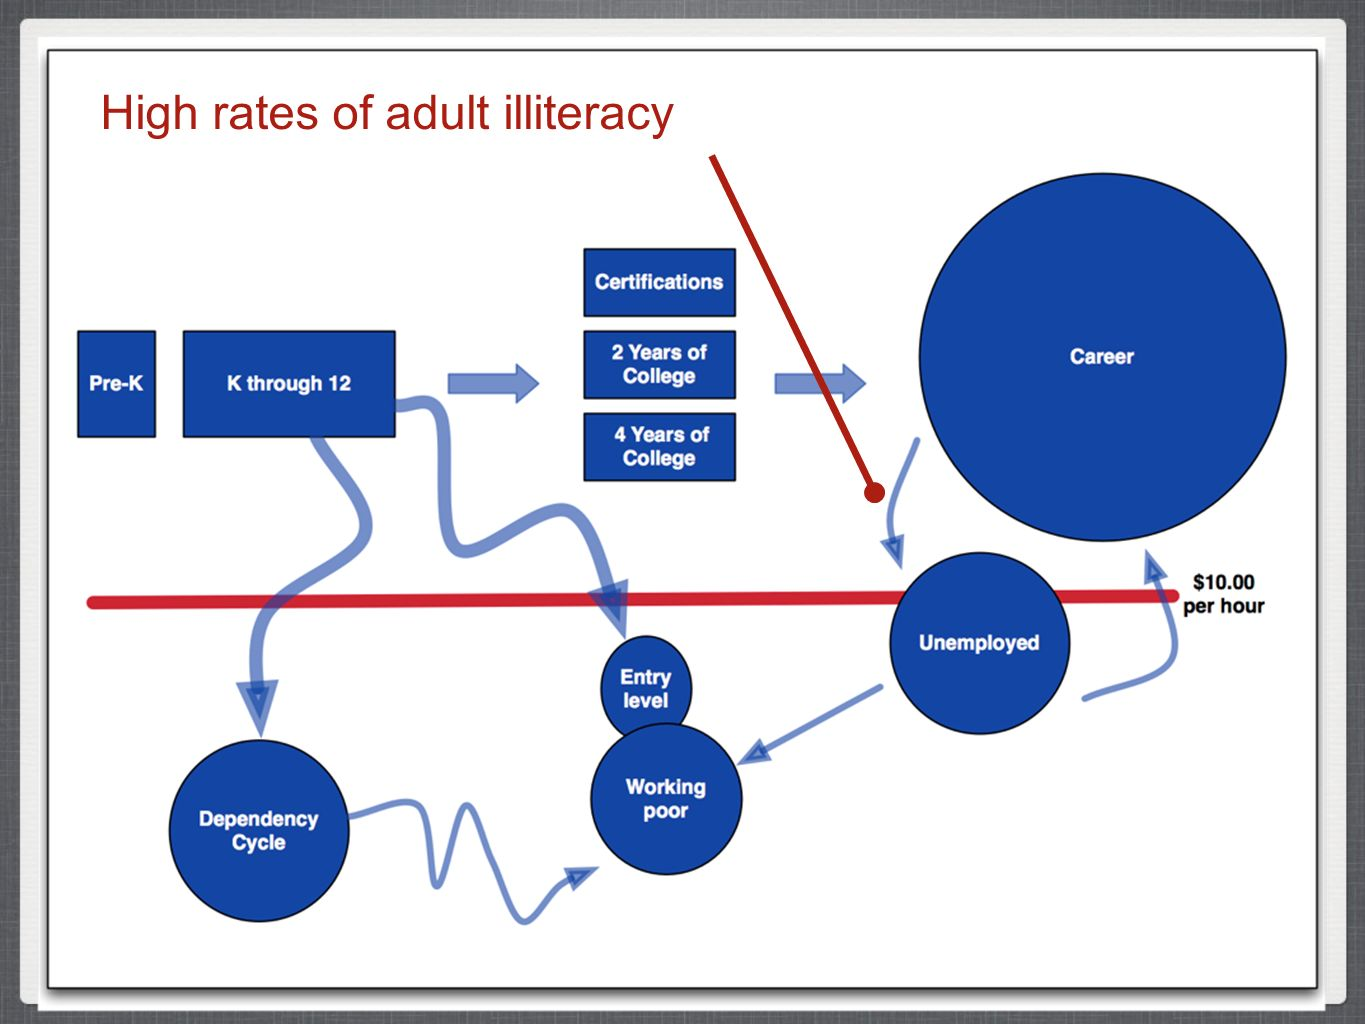 High rates of adult illiteracy